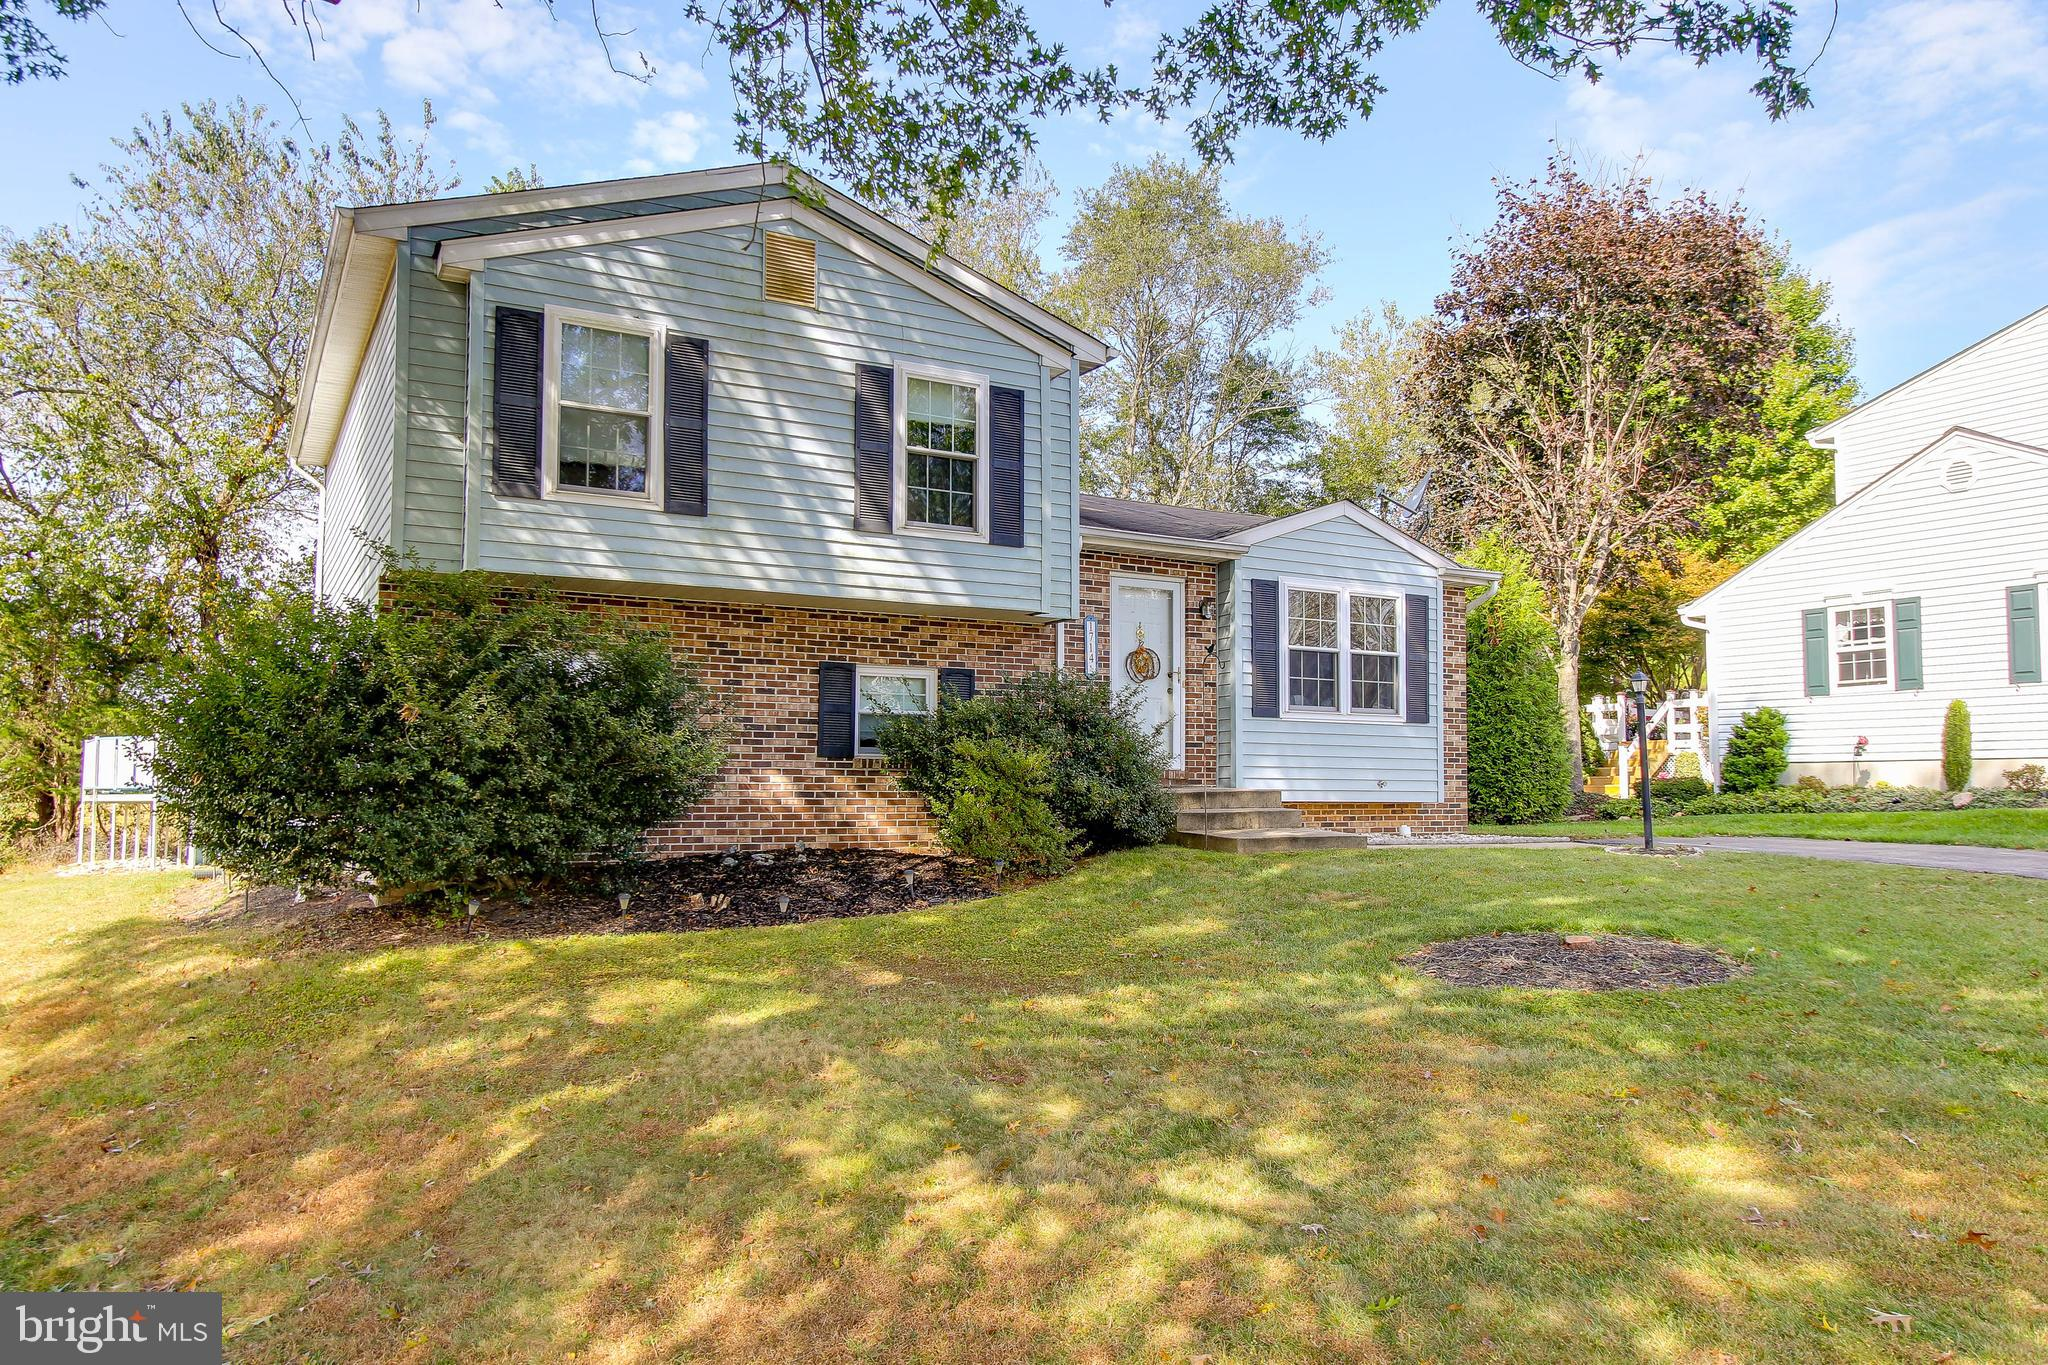 1714 AMBERLY SOUTH COURT, MARRIOTTSVILLE, MD 21104